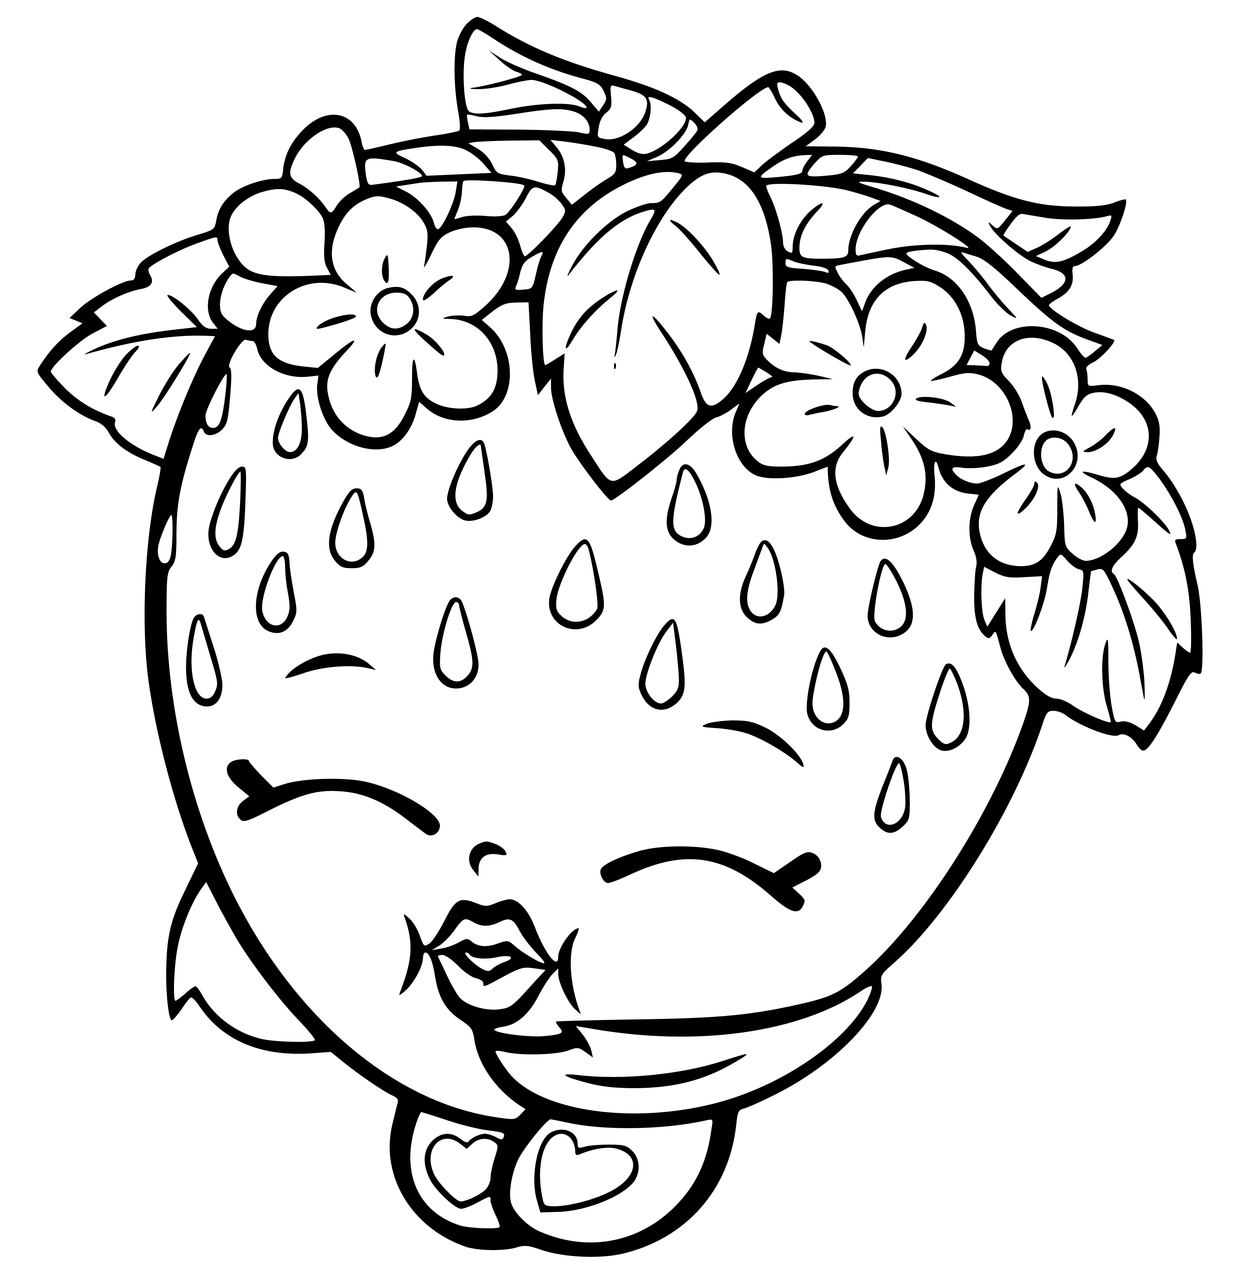 Coloring Pages Images : Shopkins coloring pages images pinterest